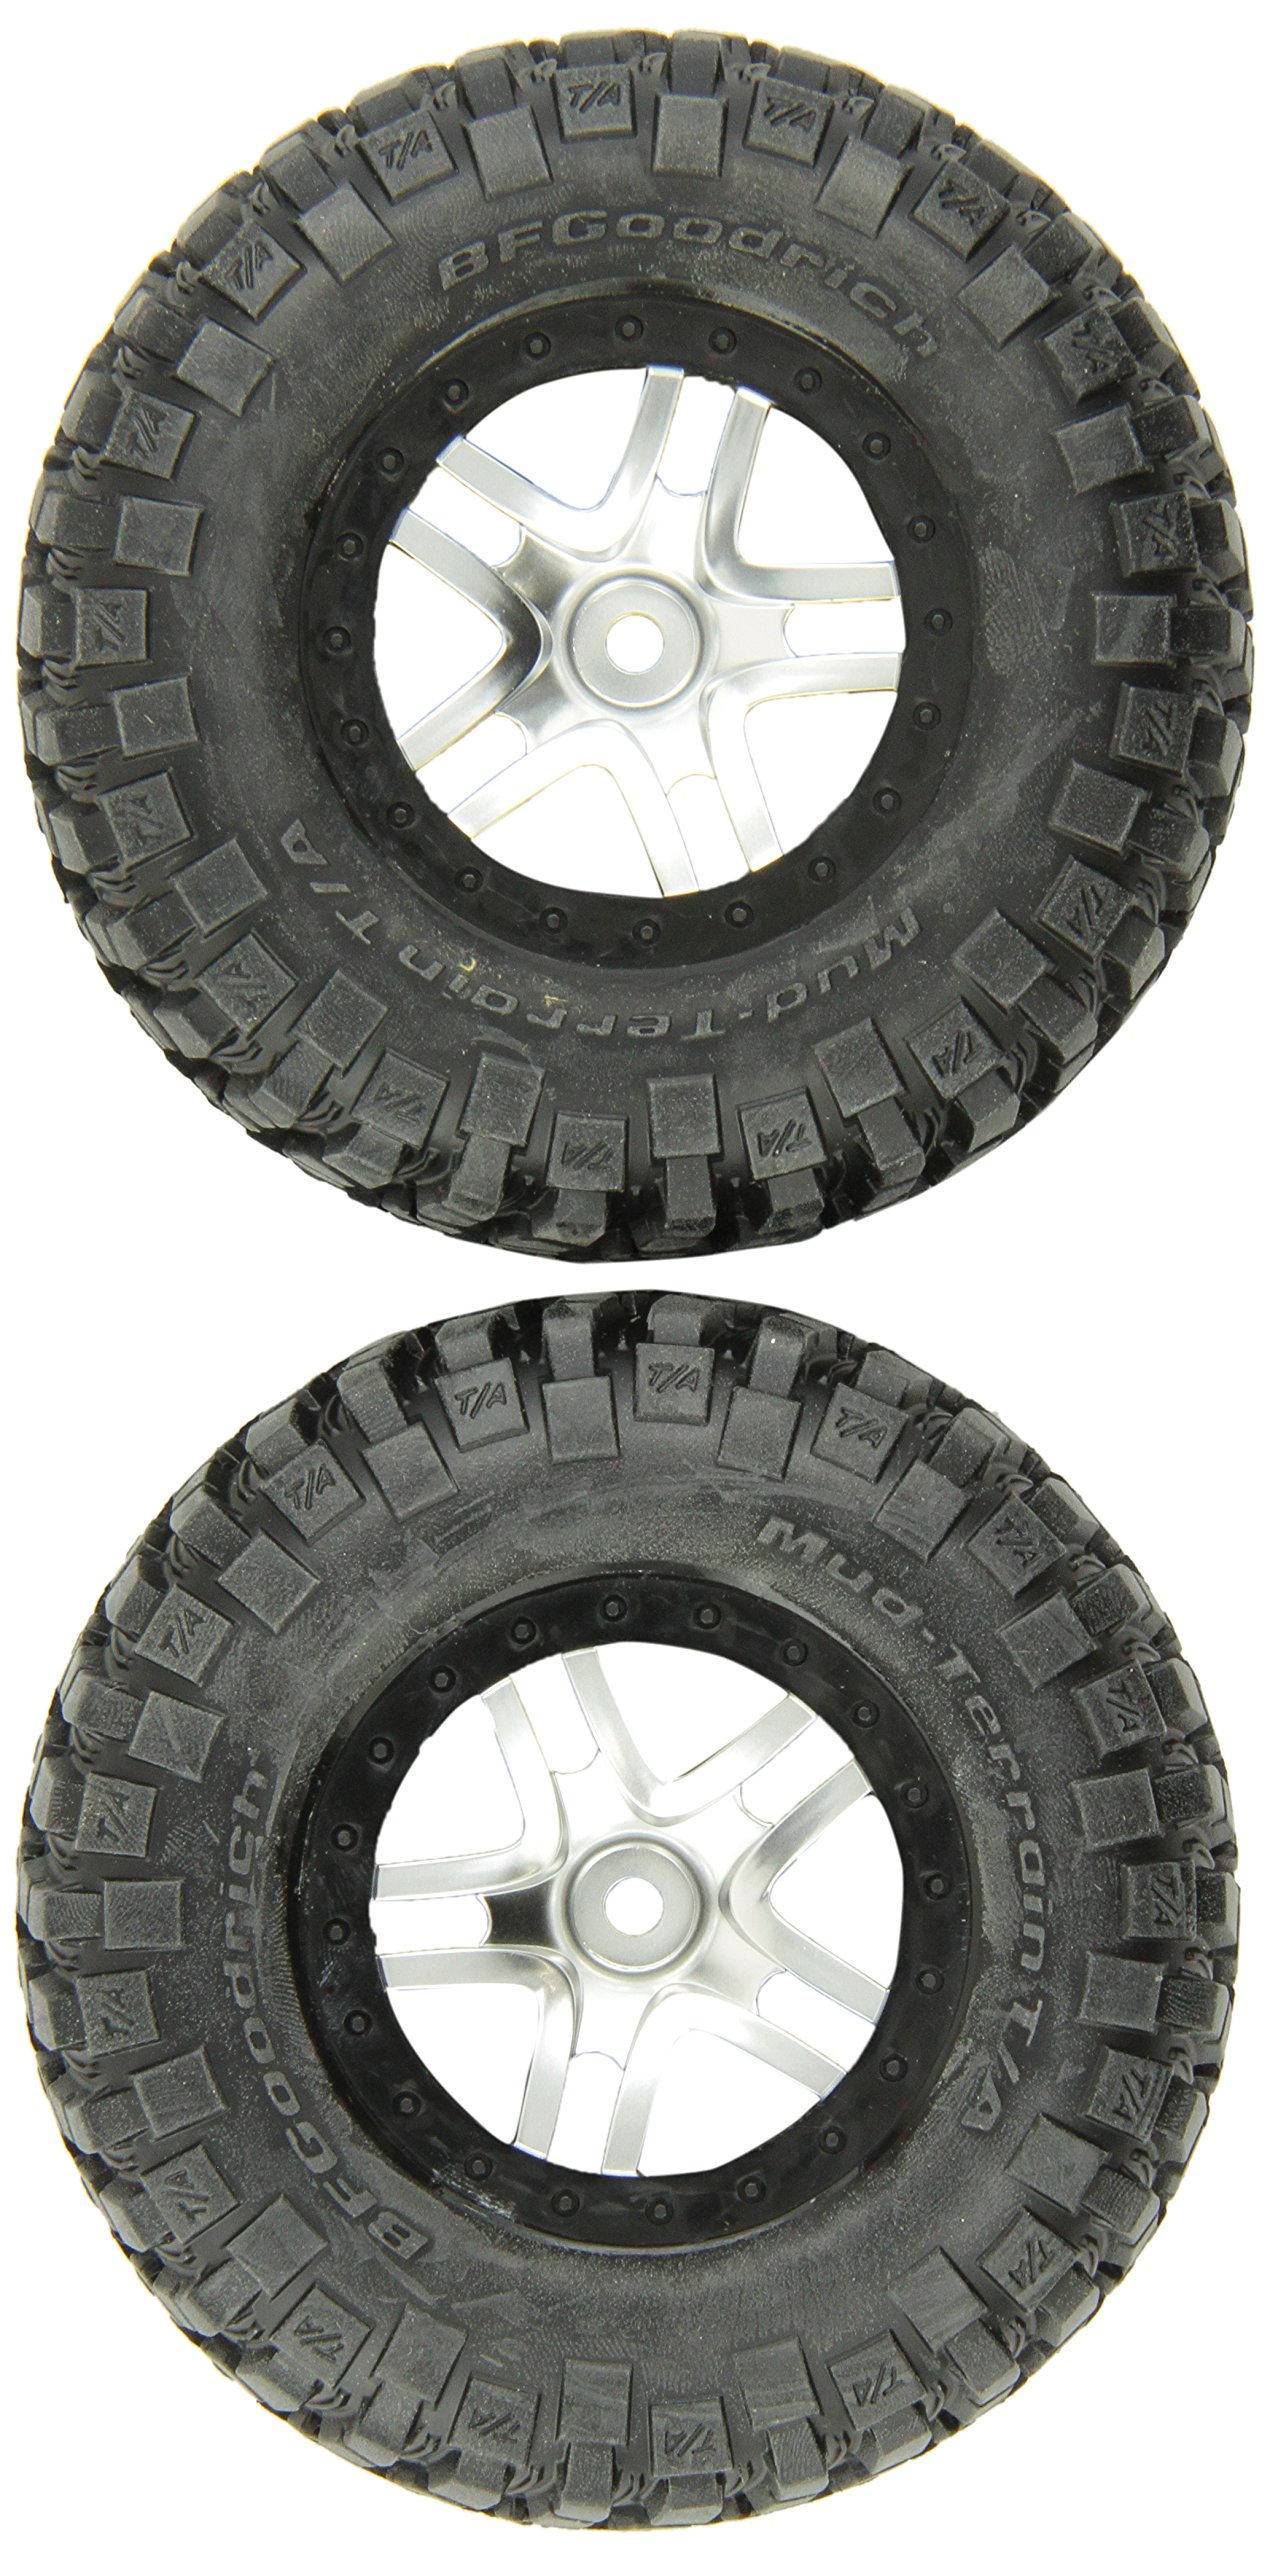 Traxxas 6873X S1 Compound BF Goodrich Mud-Terrain tires Pre-Glued on SCT Split Spoke Satin Chrome Wheels